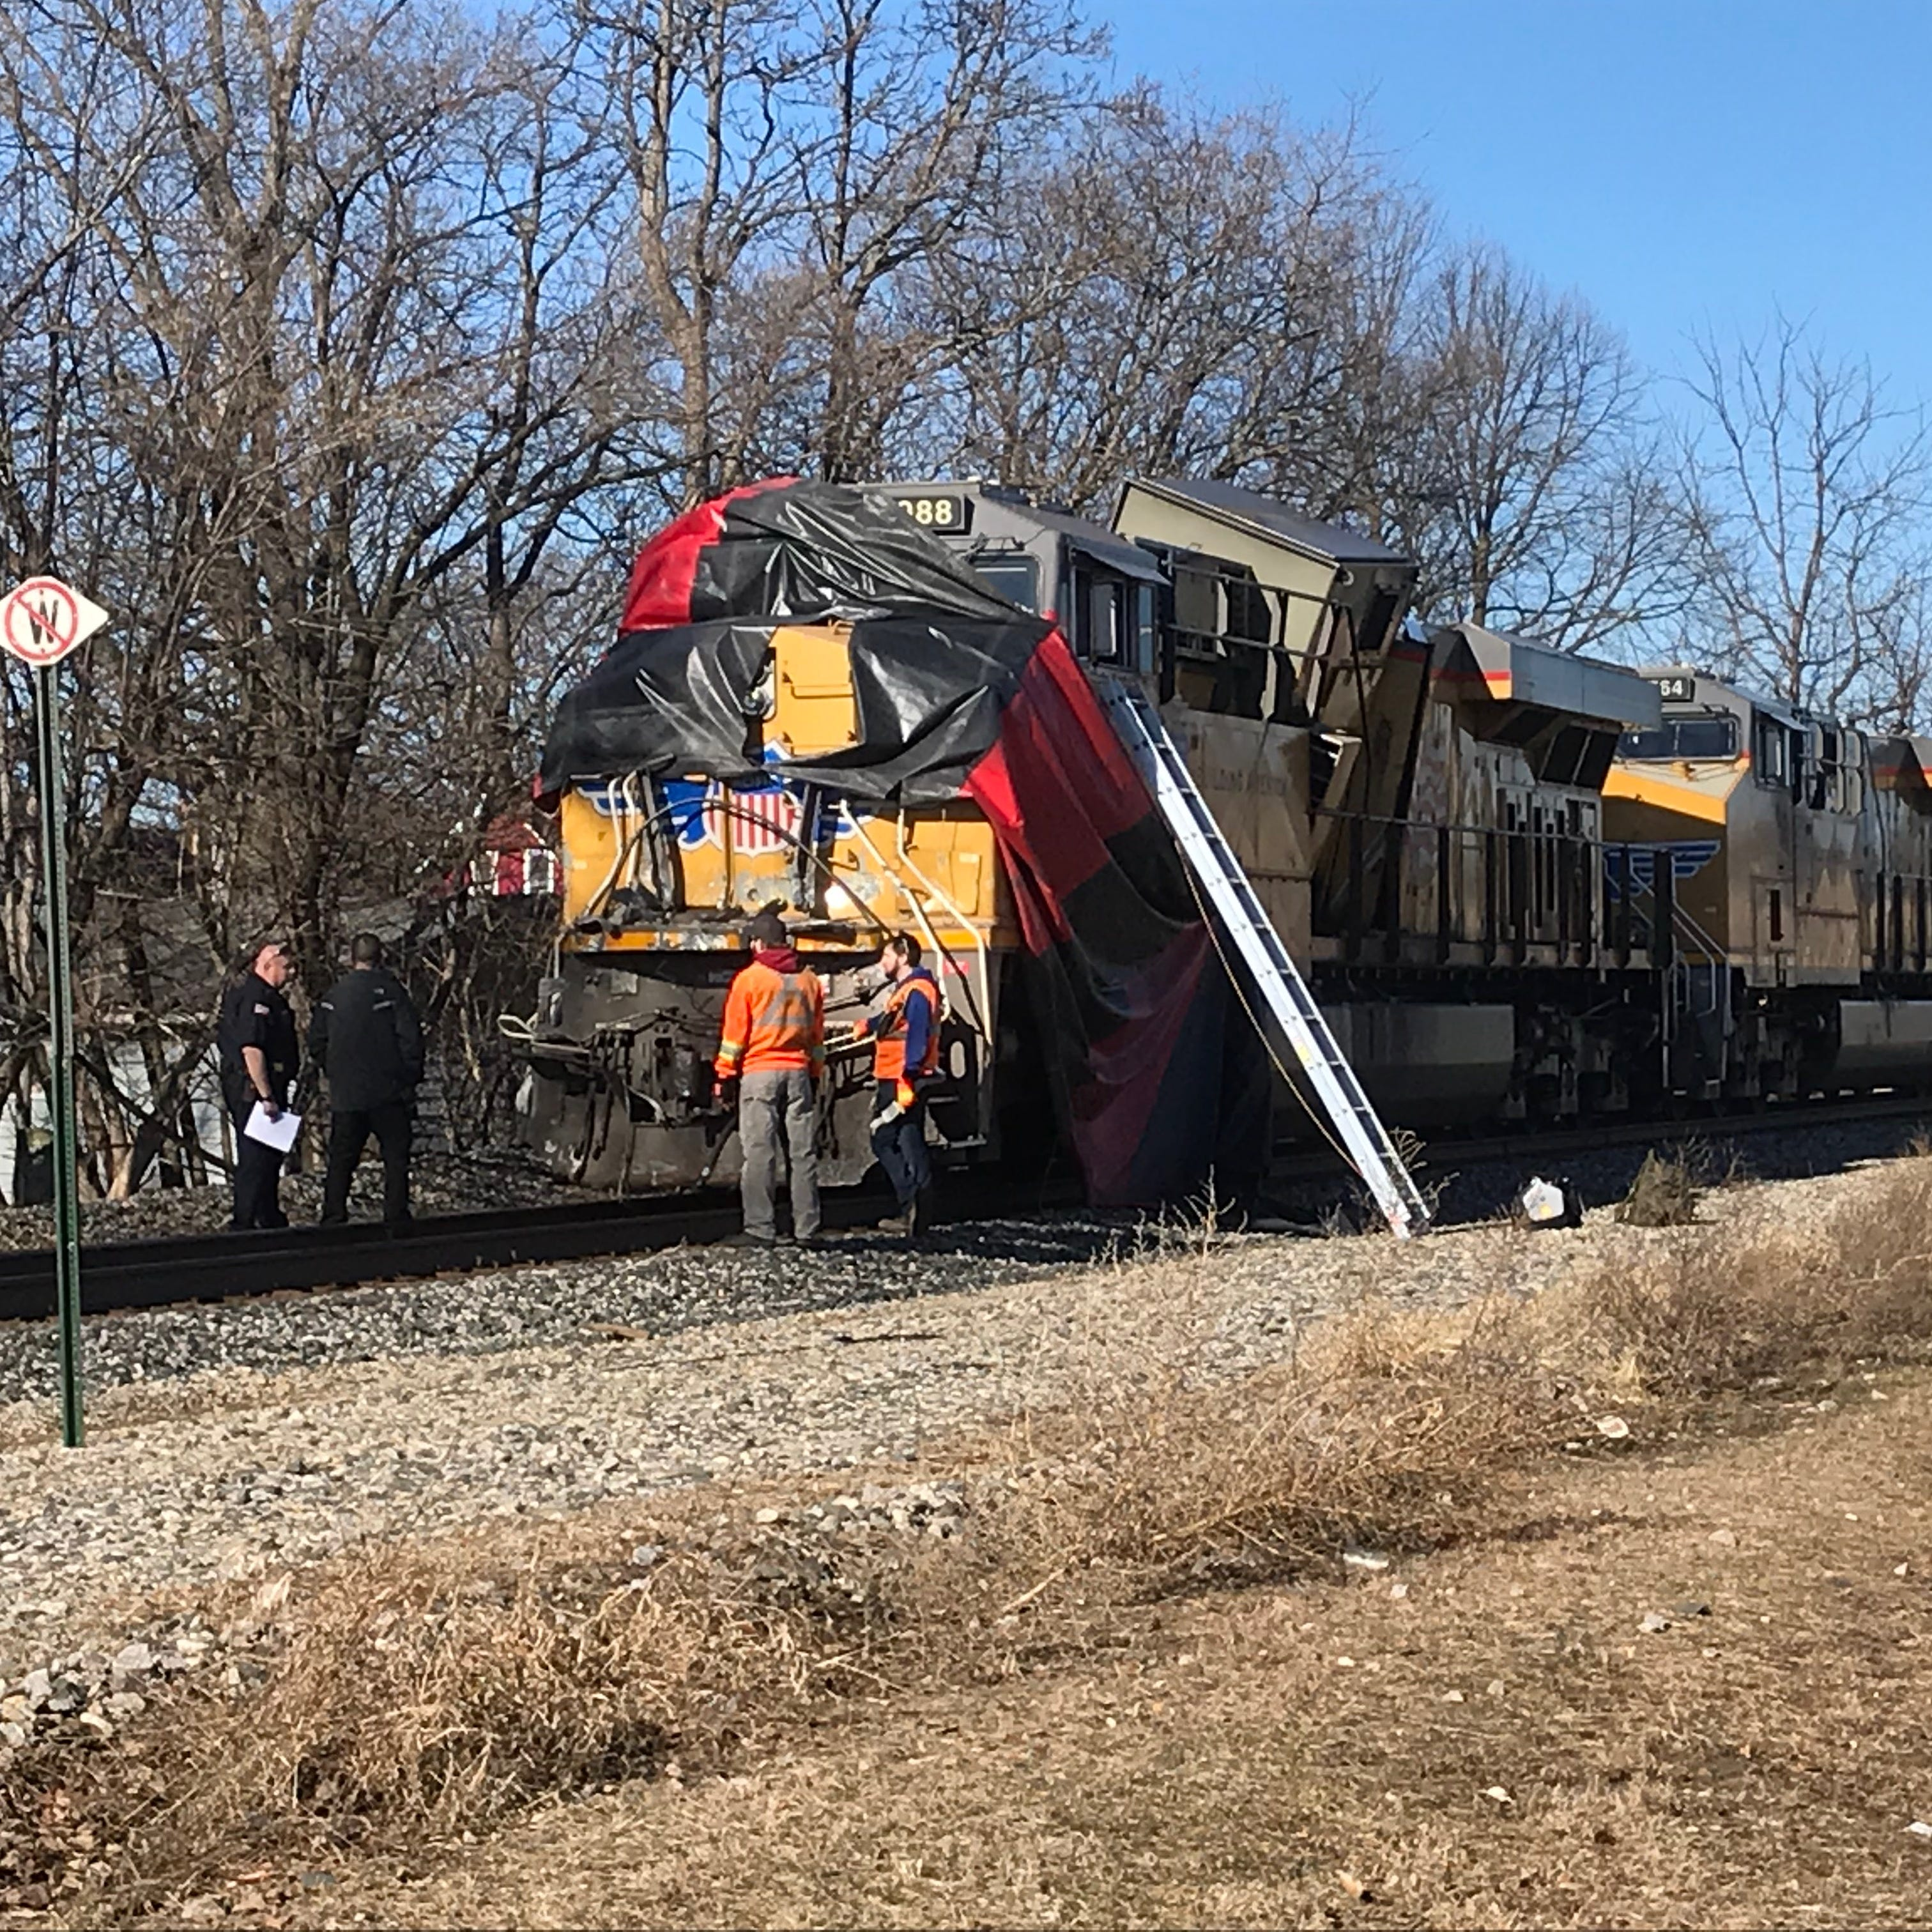 Only minor injuries reported after freight train/semi crash in Oconomowoc